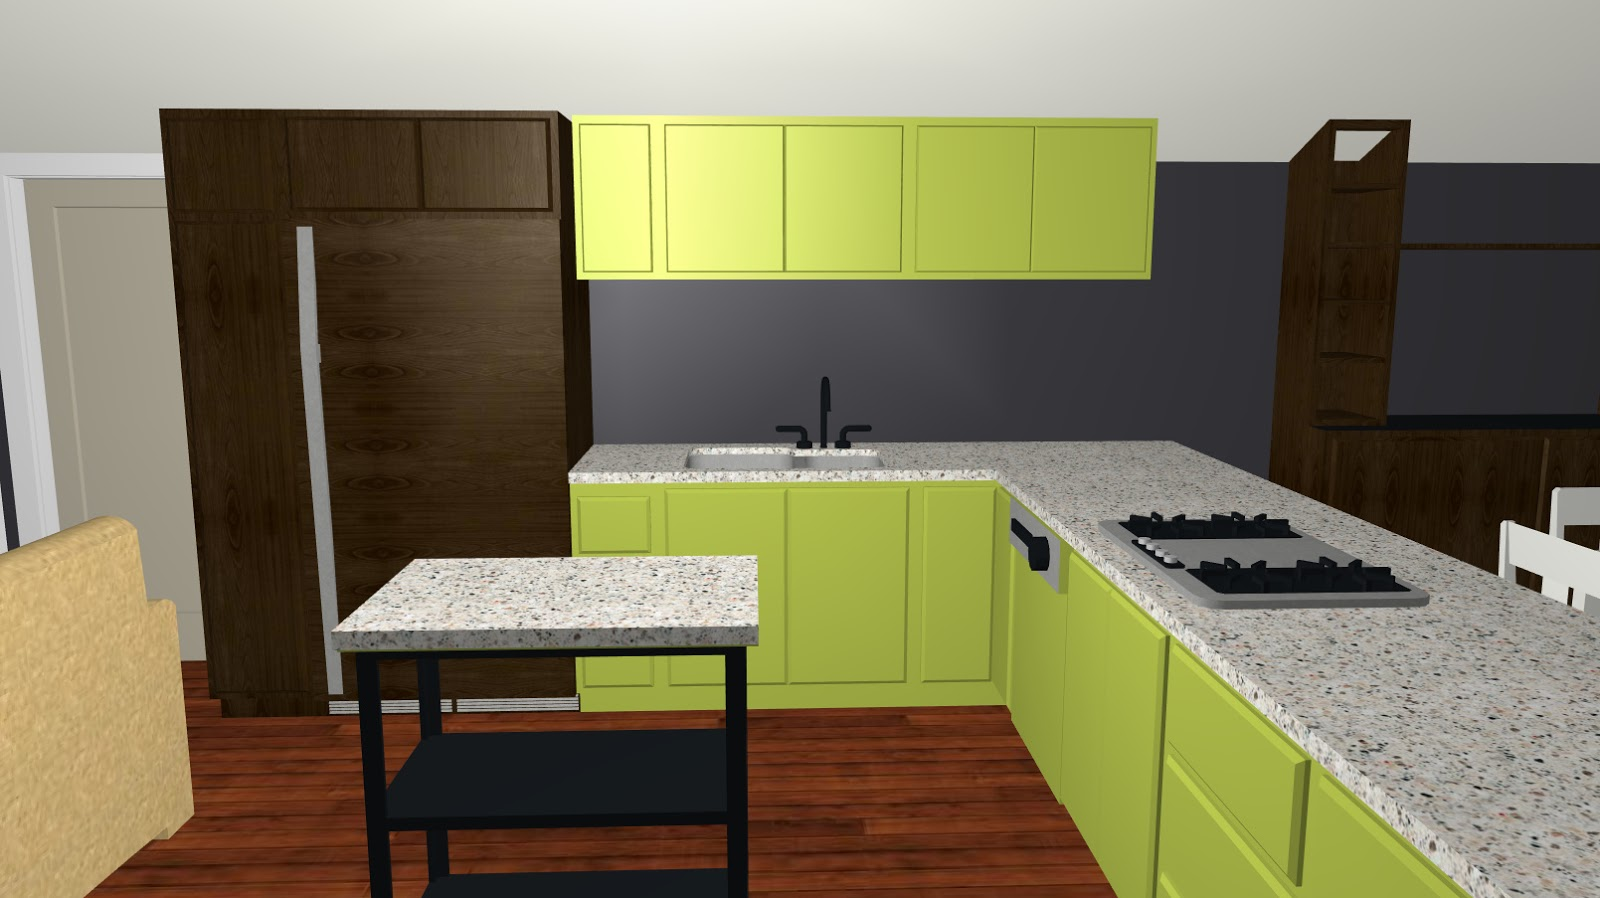 If walls could dream avocado house for Avocado kitchen cabinets